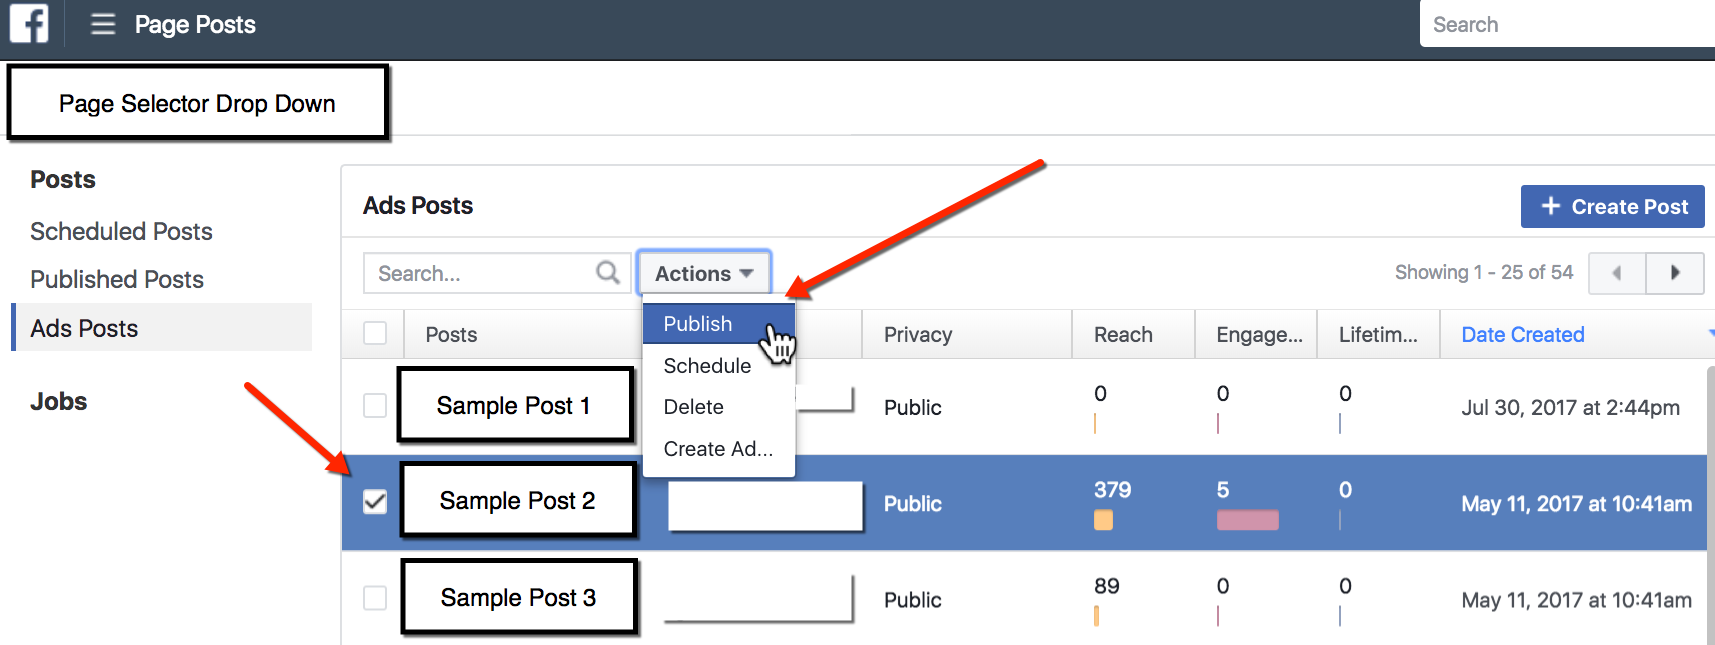 Publish an Unpublished Post - Facebook Page Posts Tool